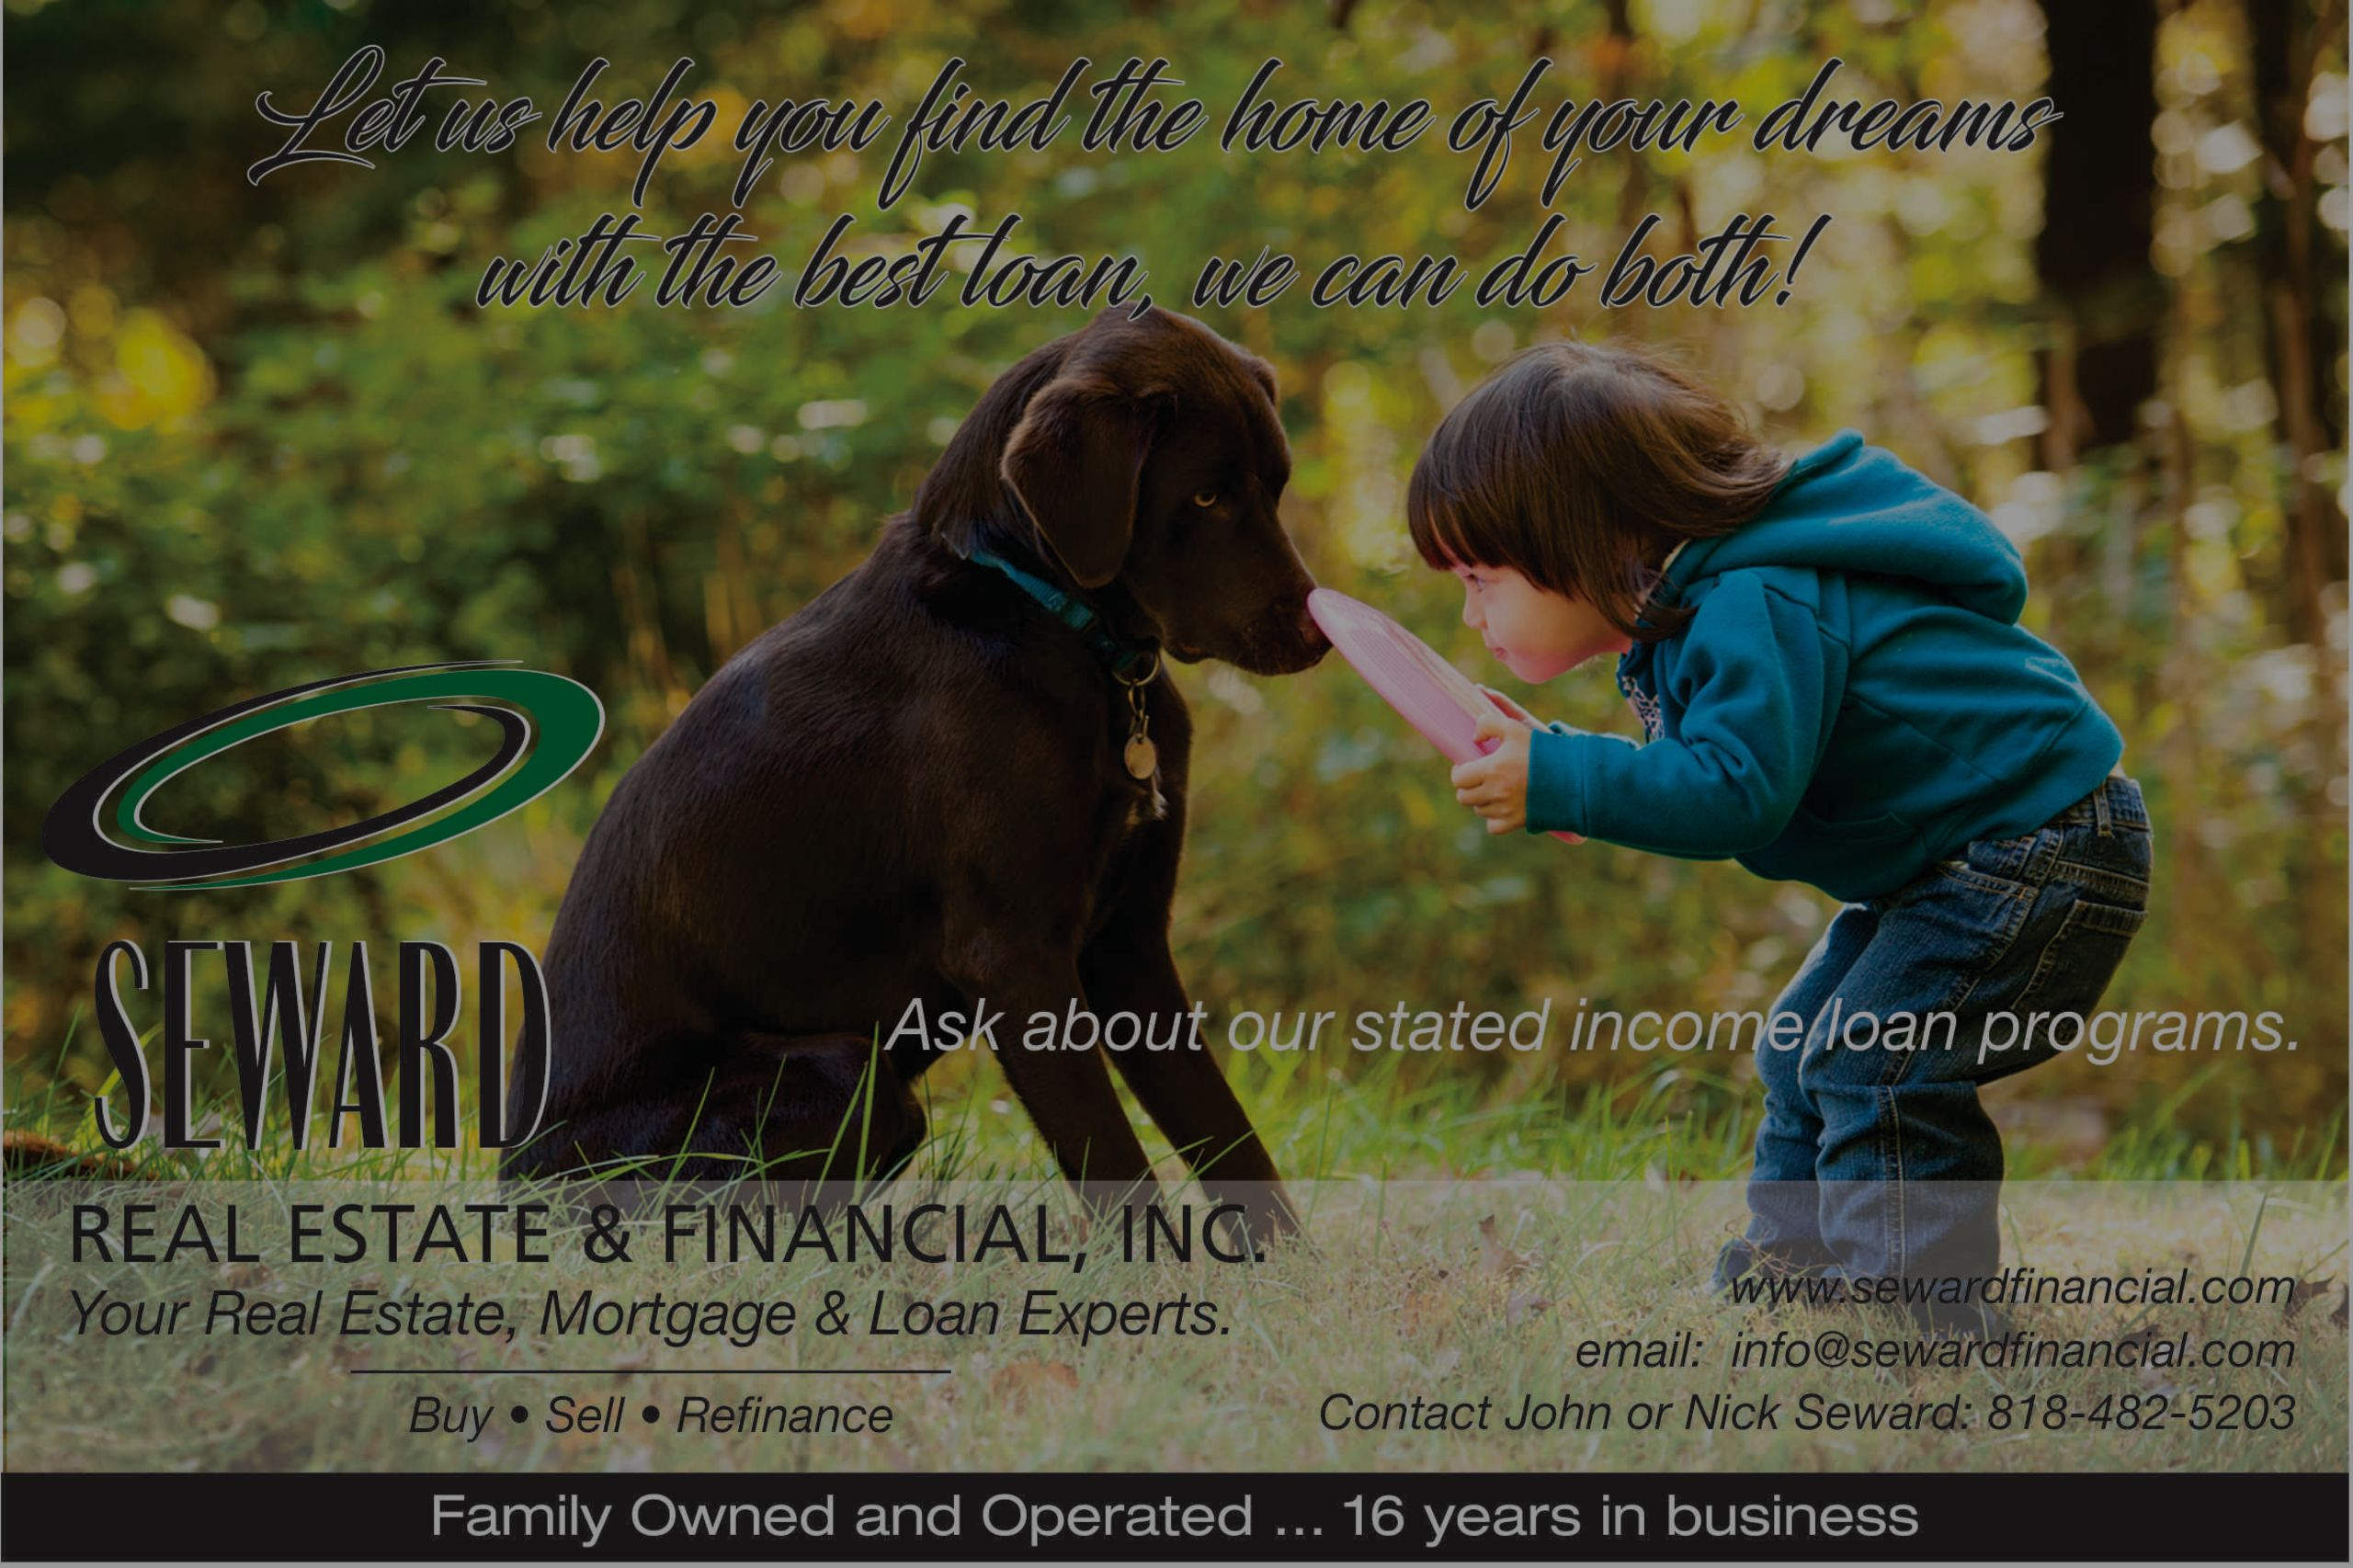 Let Us Help You Find The Home of Your Dreams, With The Best Loan!